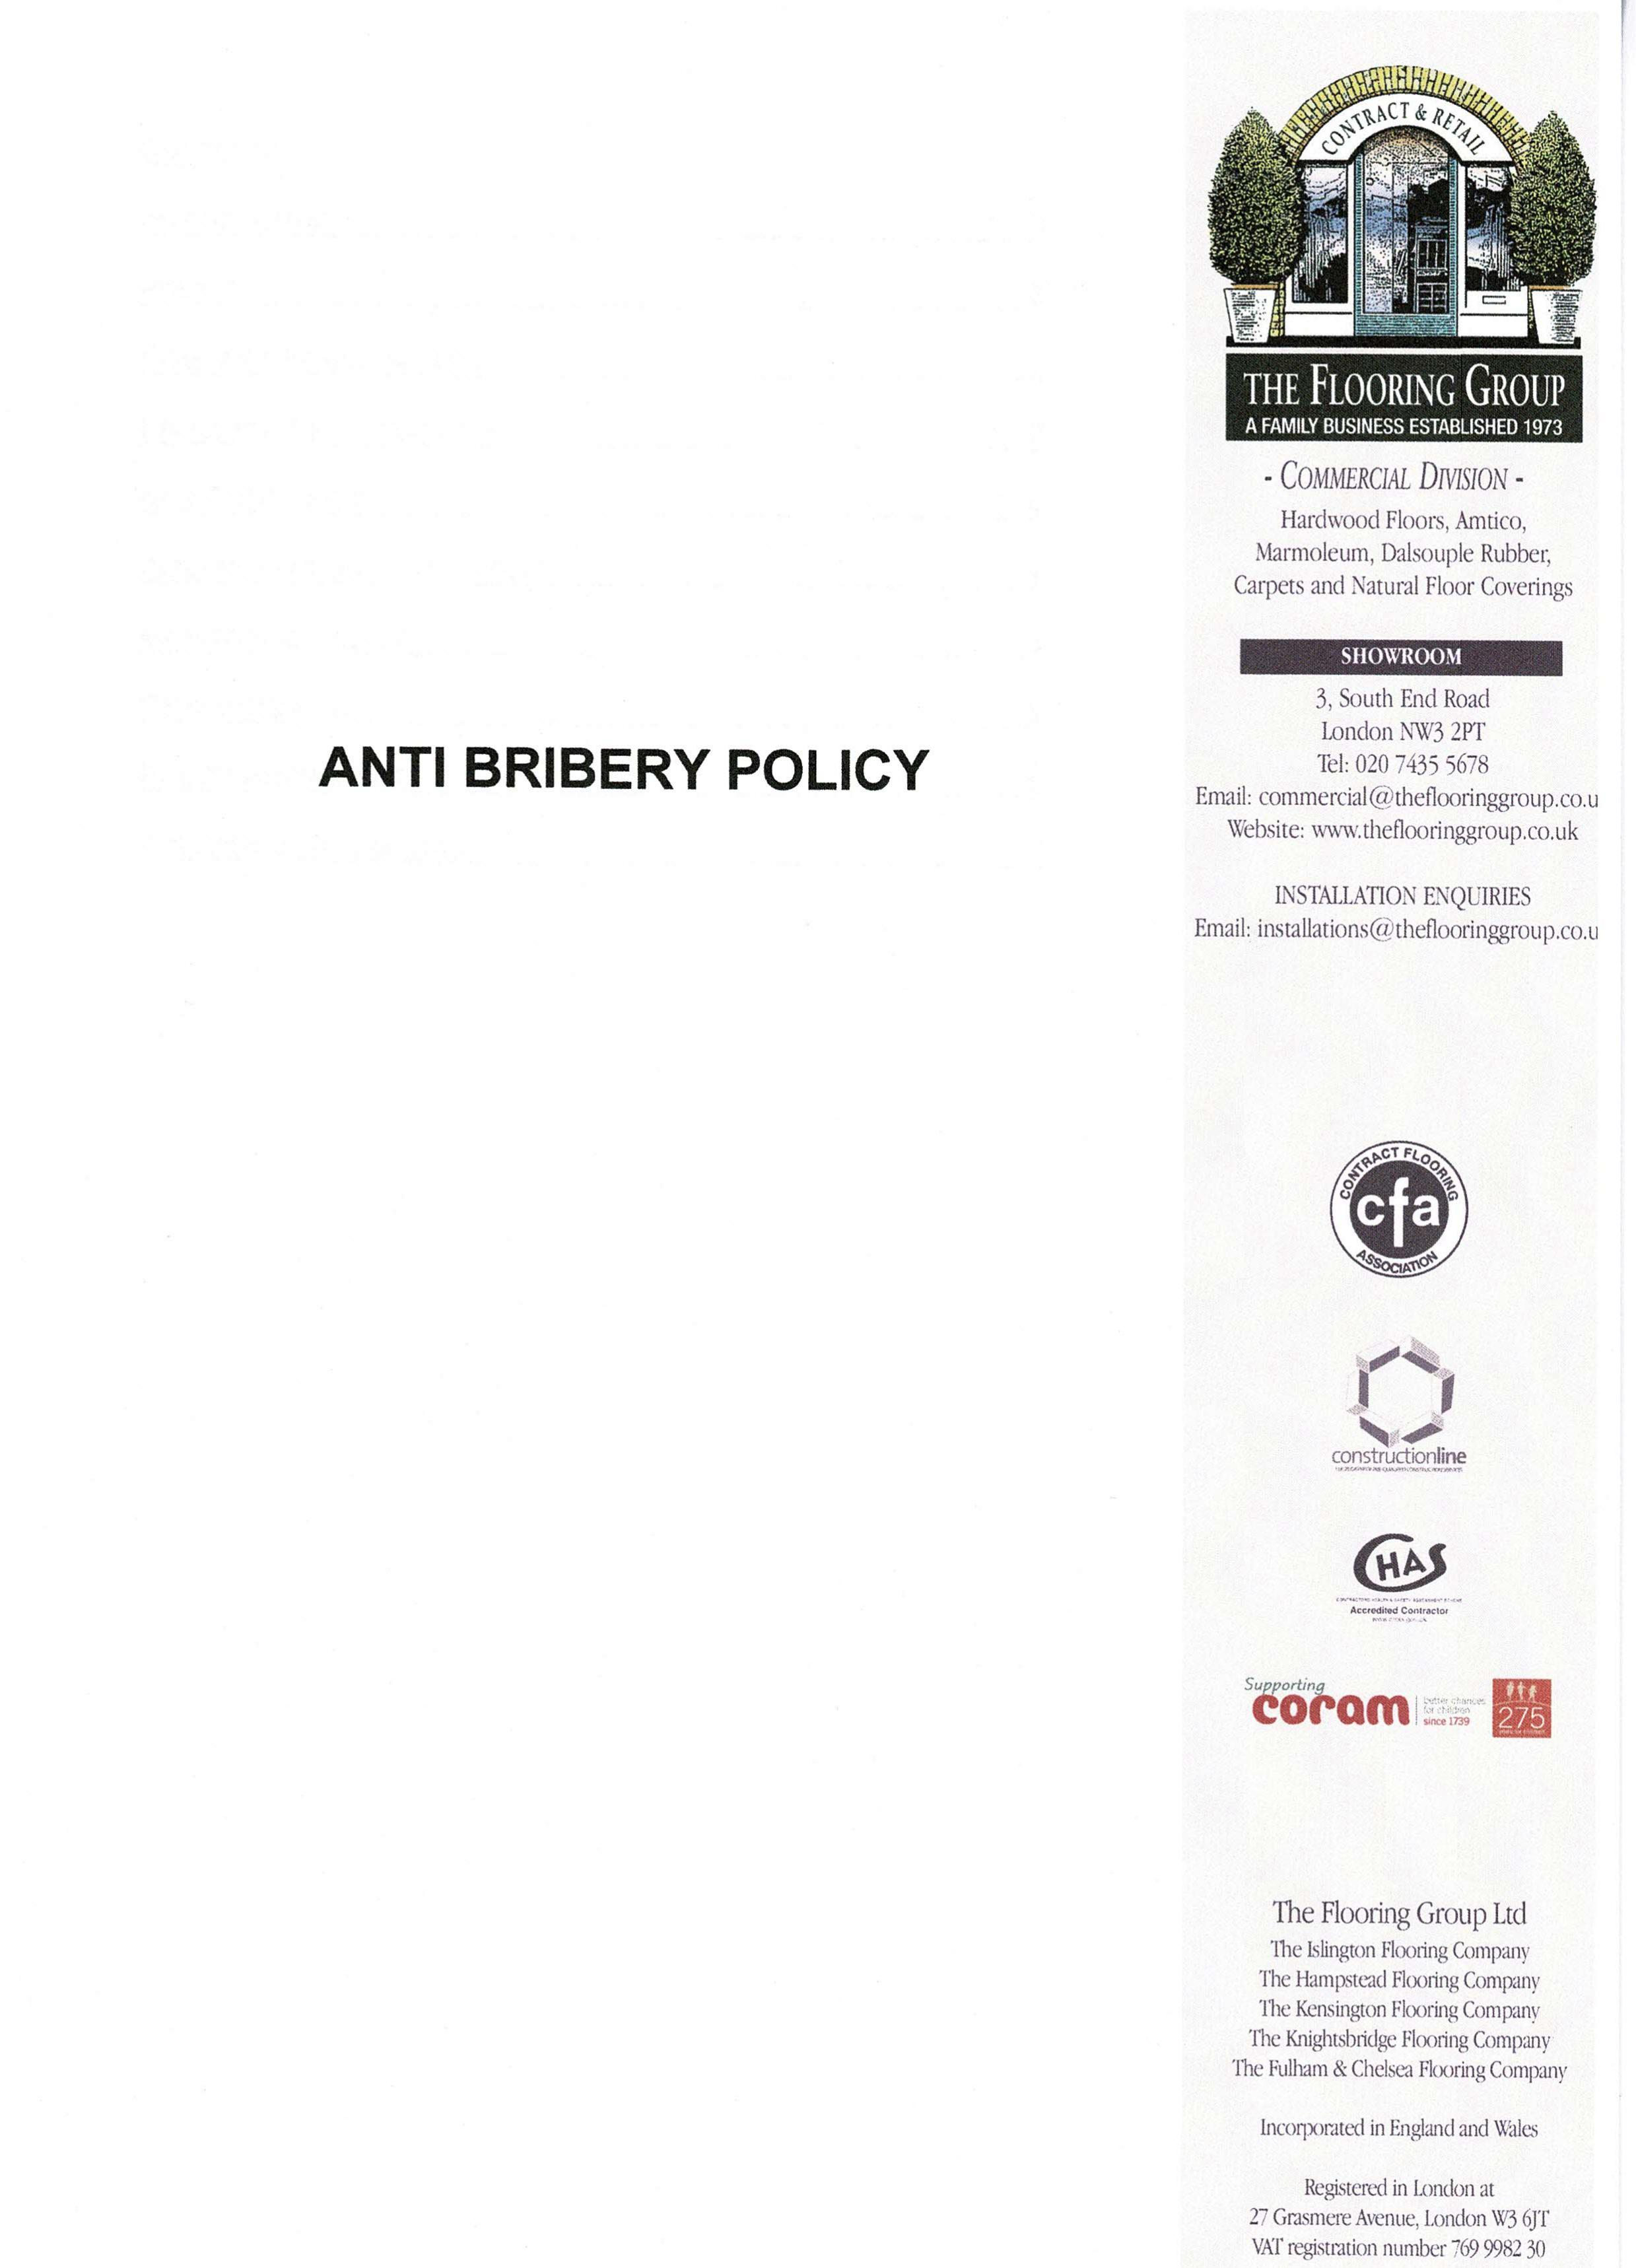 Anti-Bribery Policy page 1